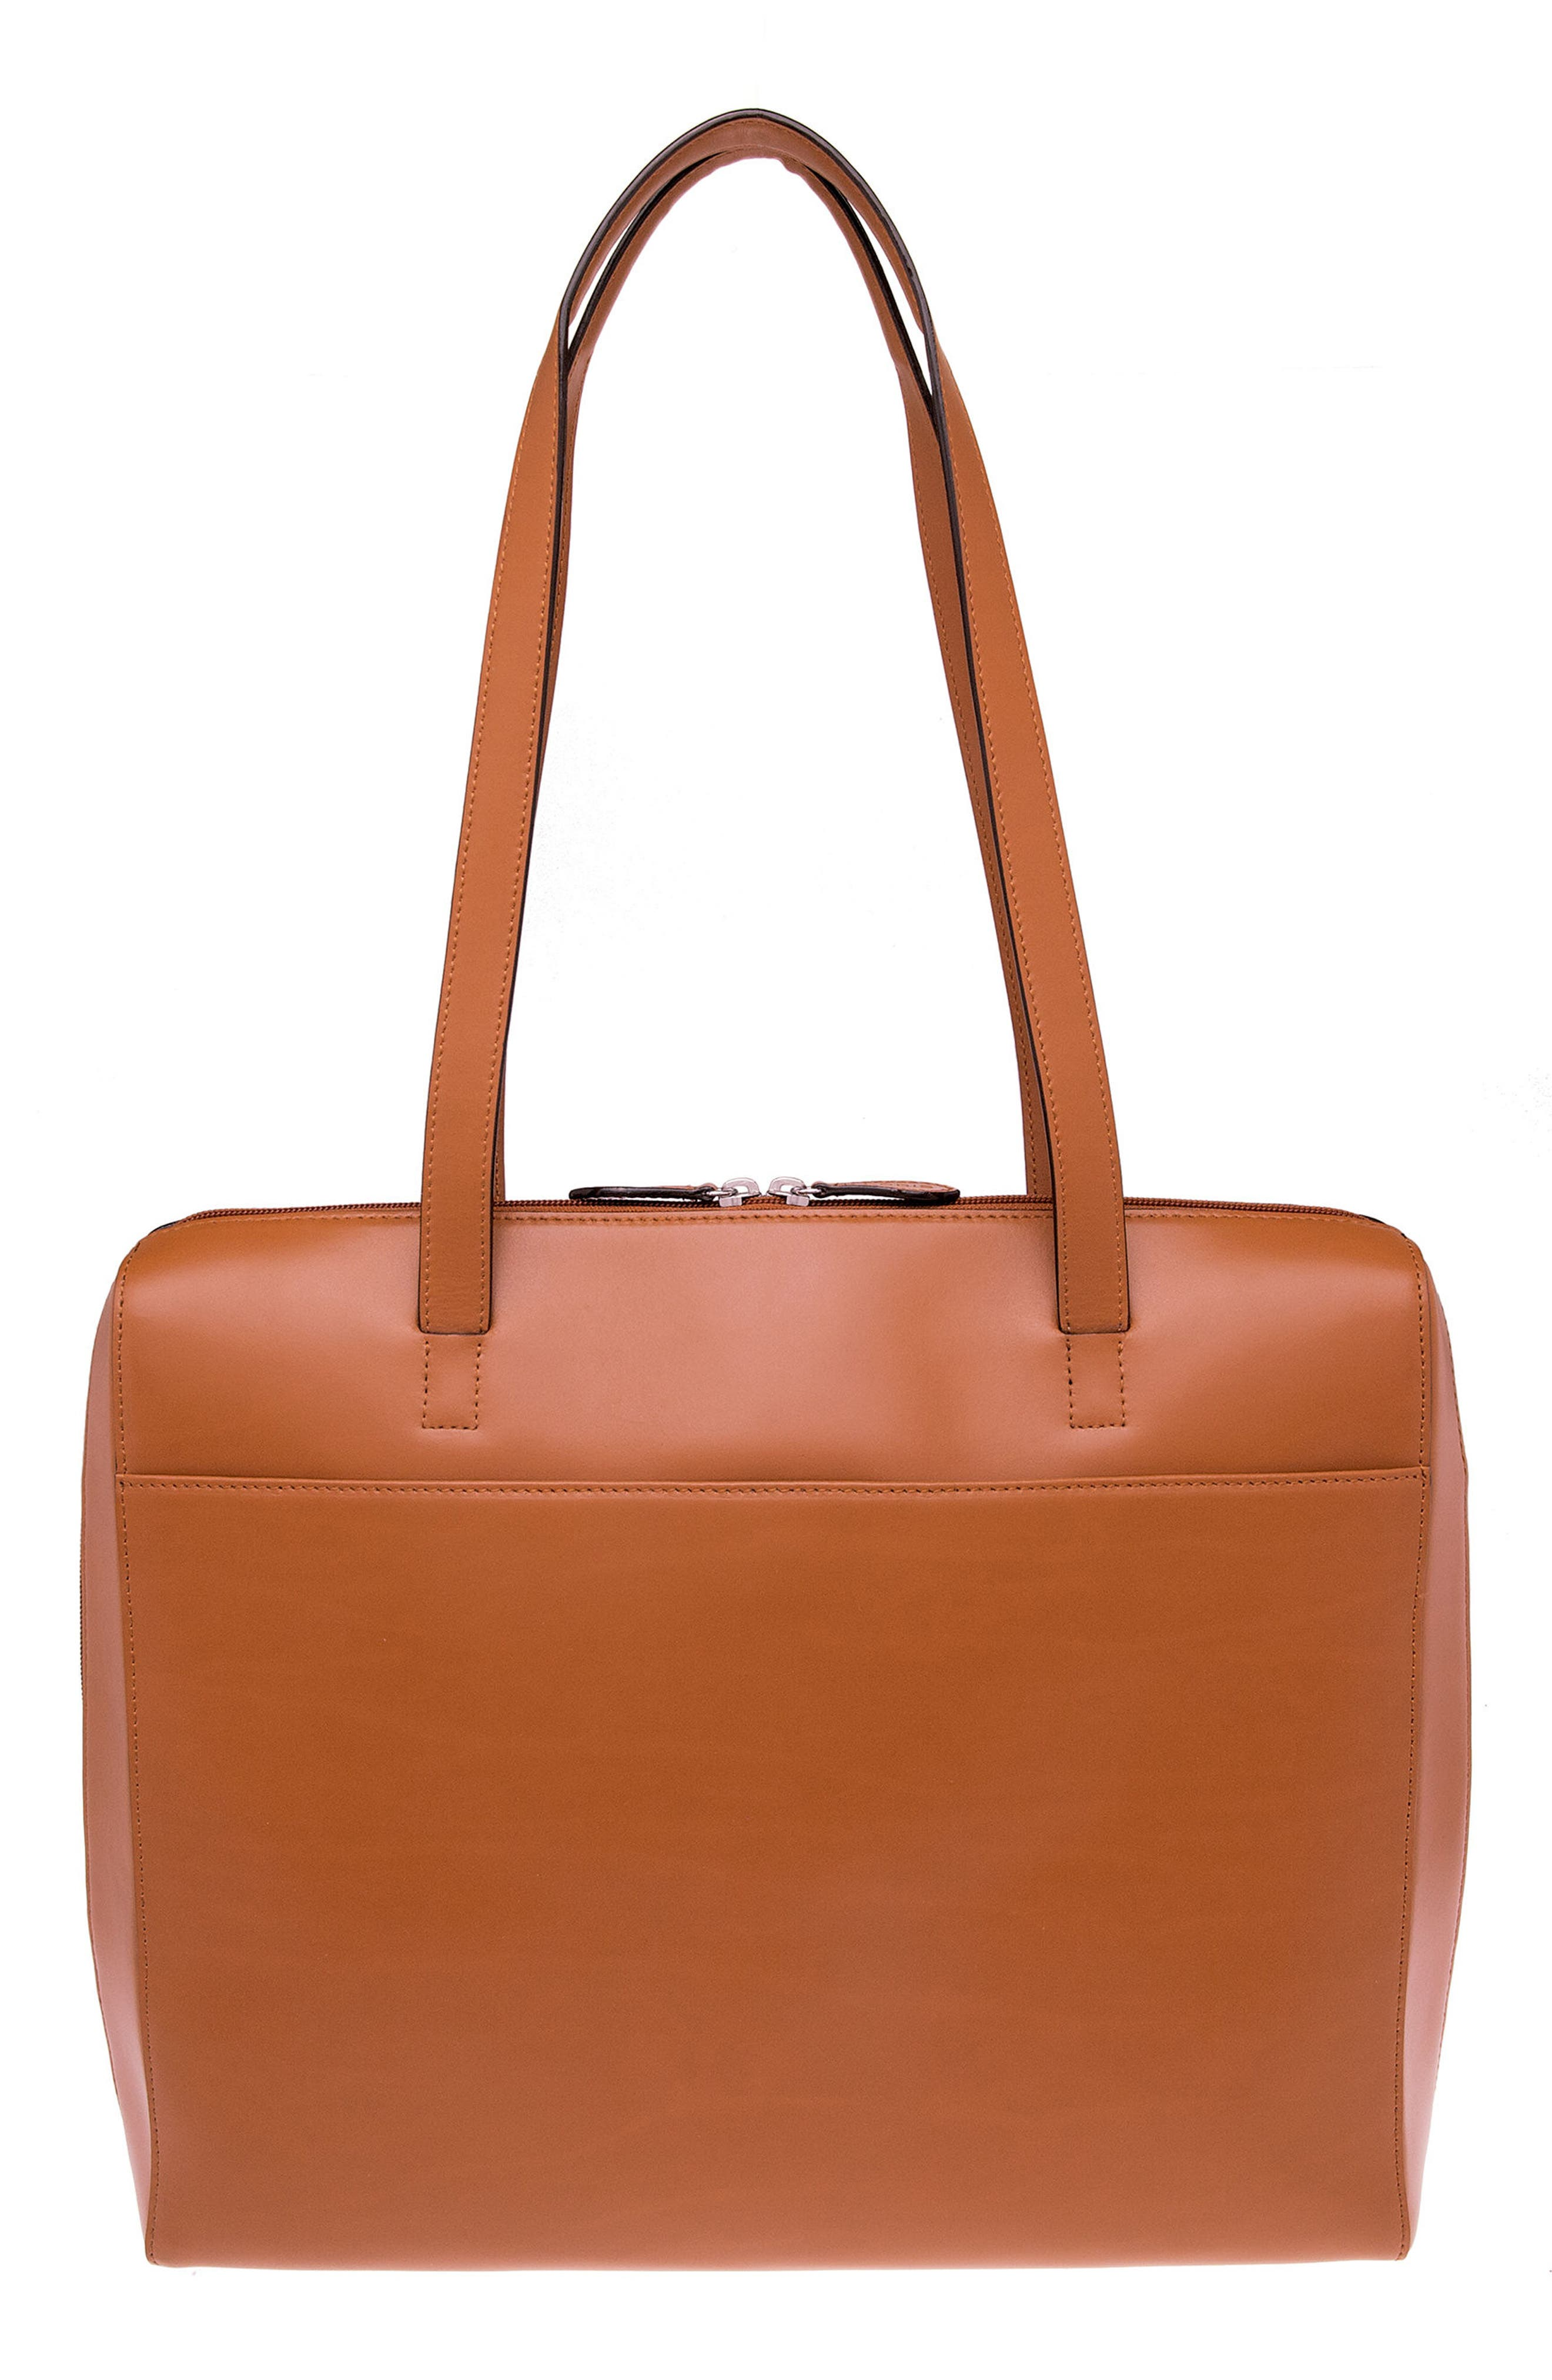 Audrey Under Lock & Key Organizer Tote,                             Main thumbnail 1, color,                             TOFFEE